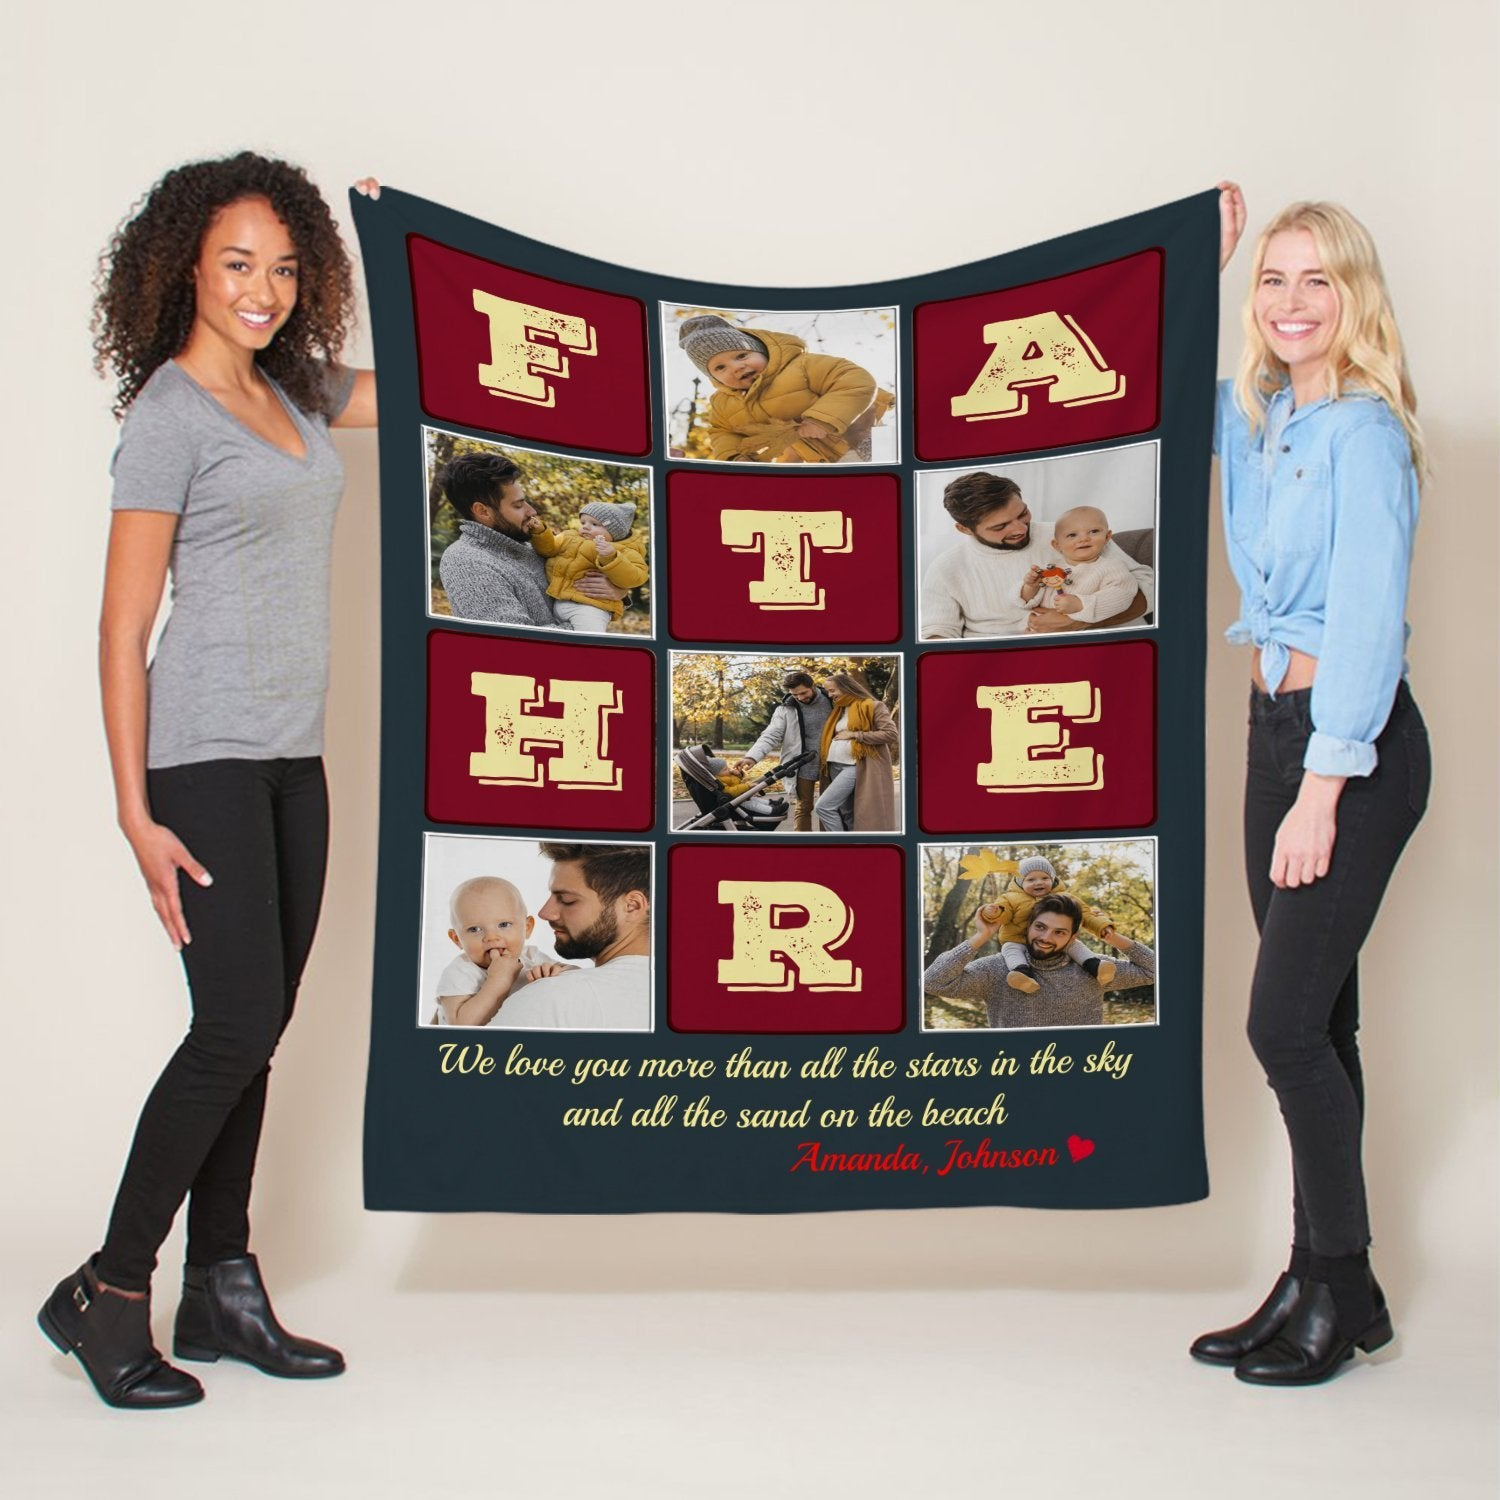 Sometimes, a good night's sleep is the best gift for a newbie Dad. Let's make his night more comfortable with this beautiful blanket. It's also a good way to showcase favorite photos and moments of your little family.